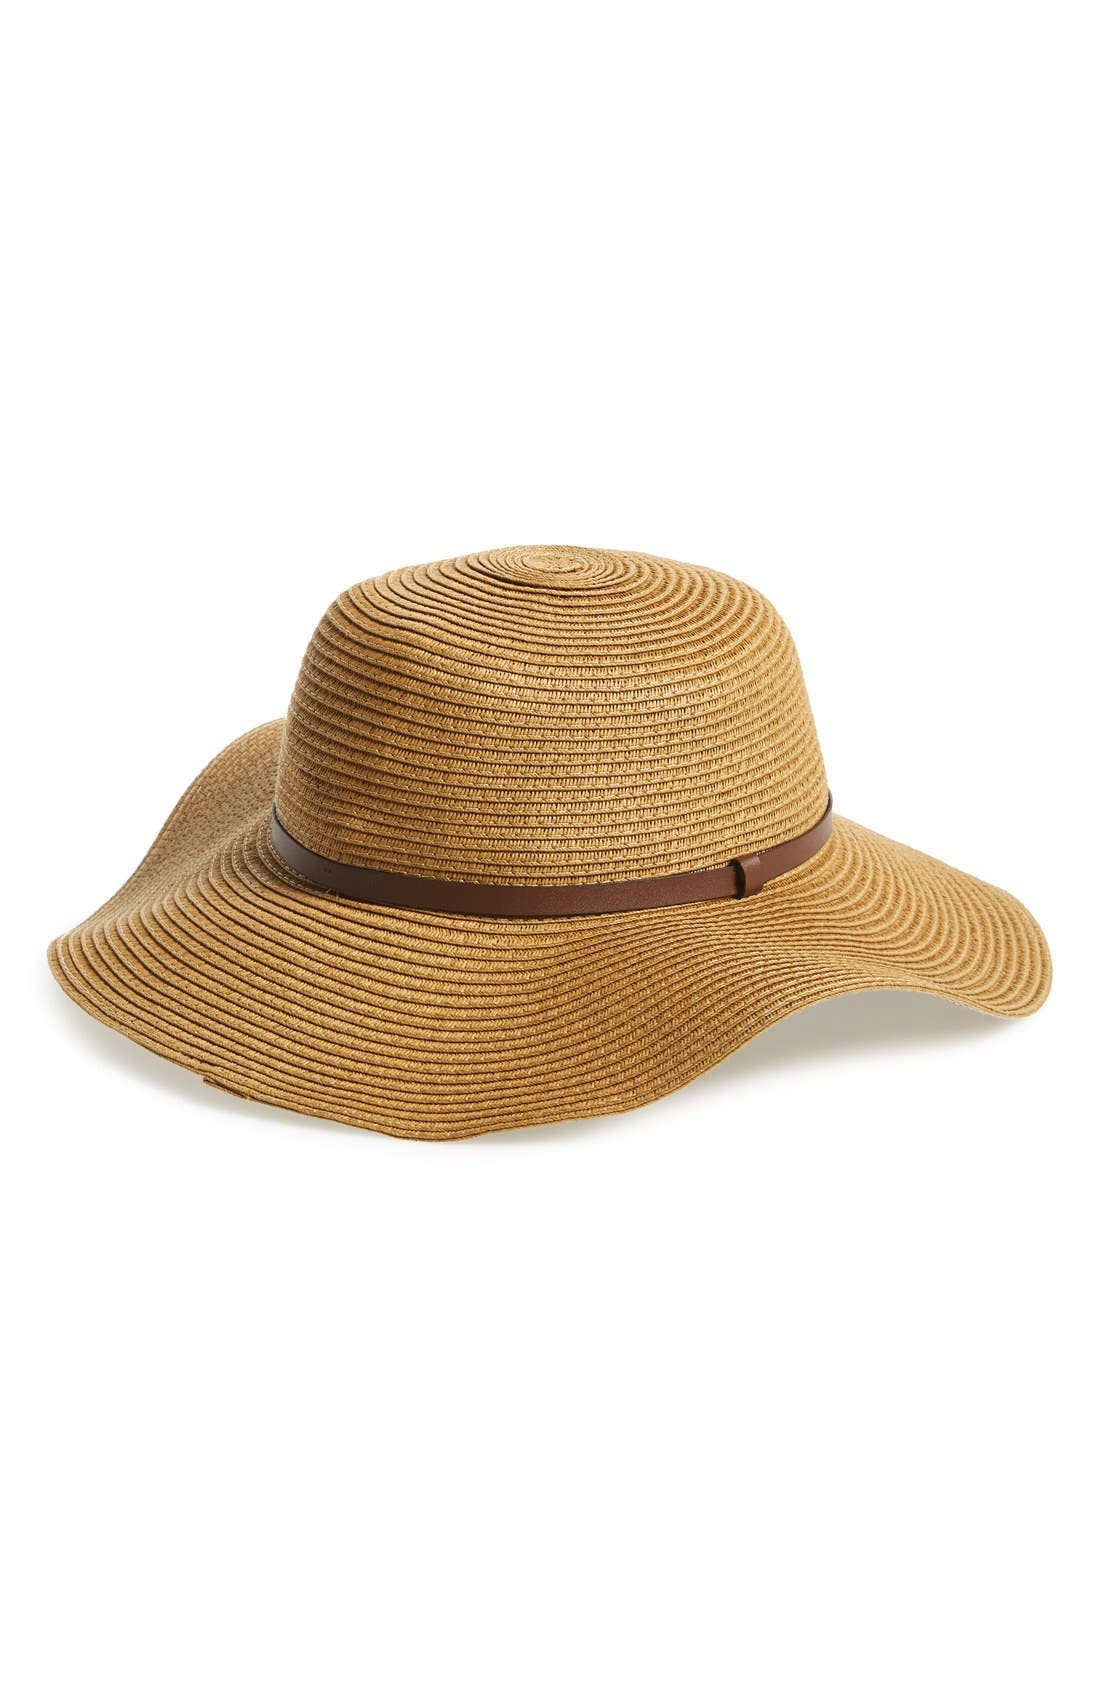 Alternate Image 1 Selected - Nordstrom Braided Straw Floppy Hat